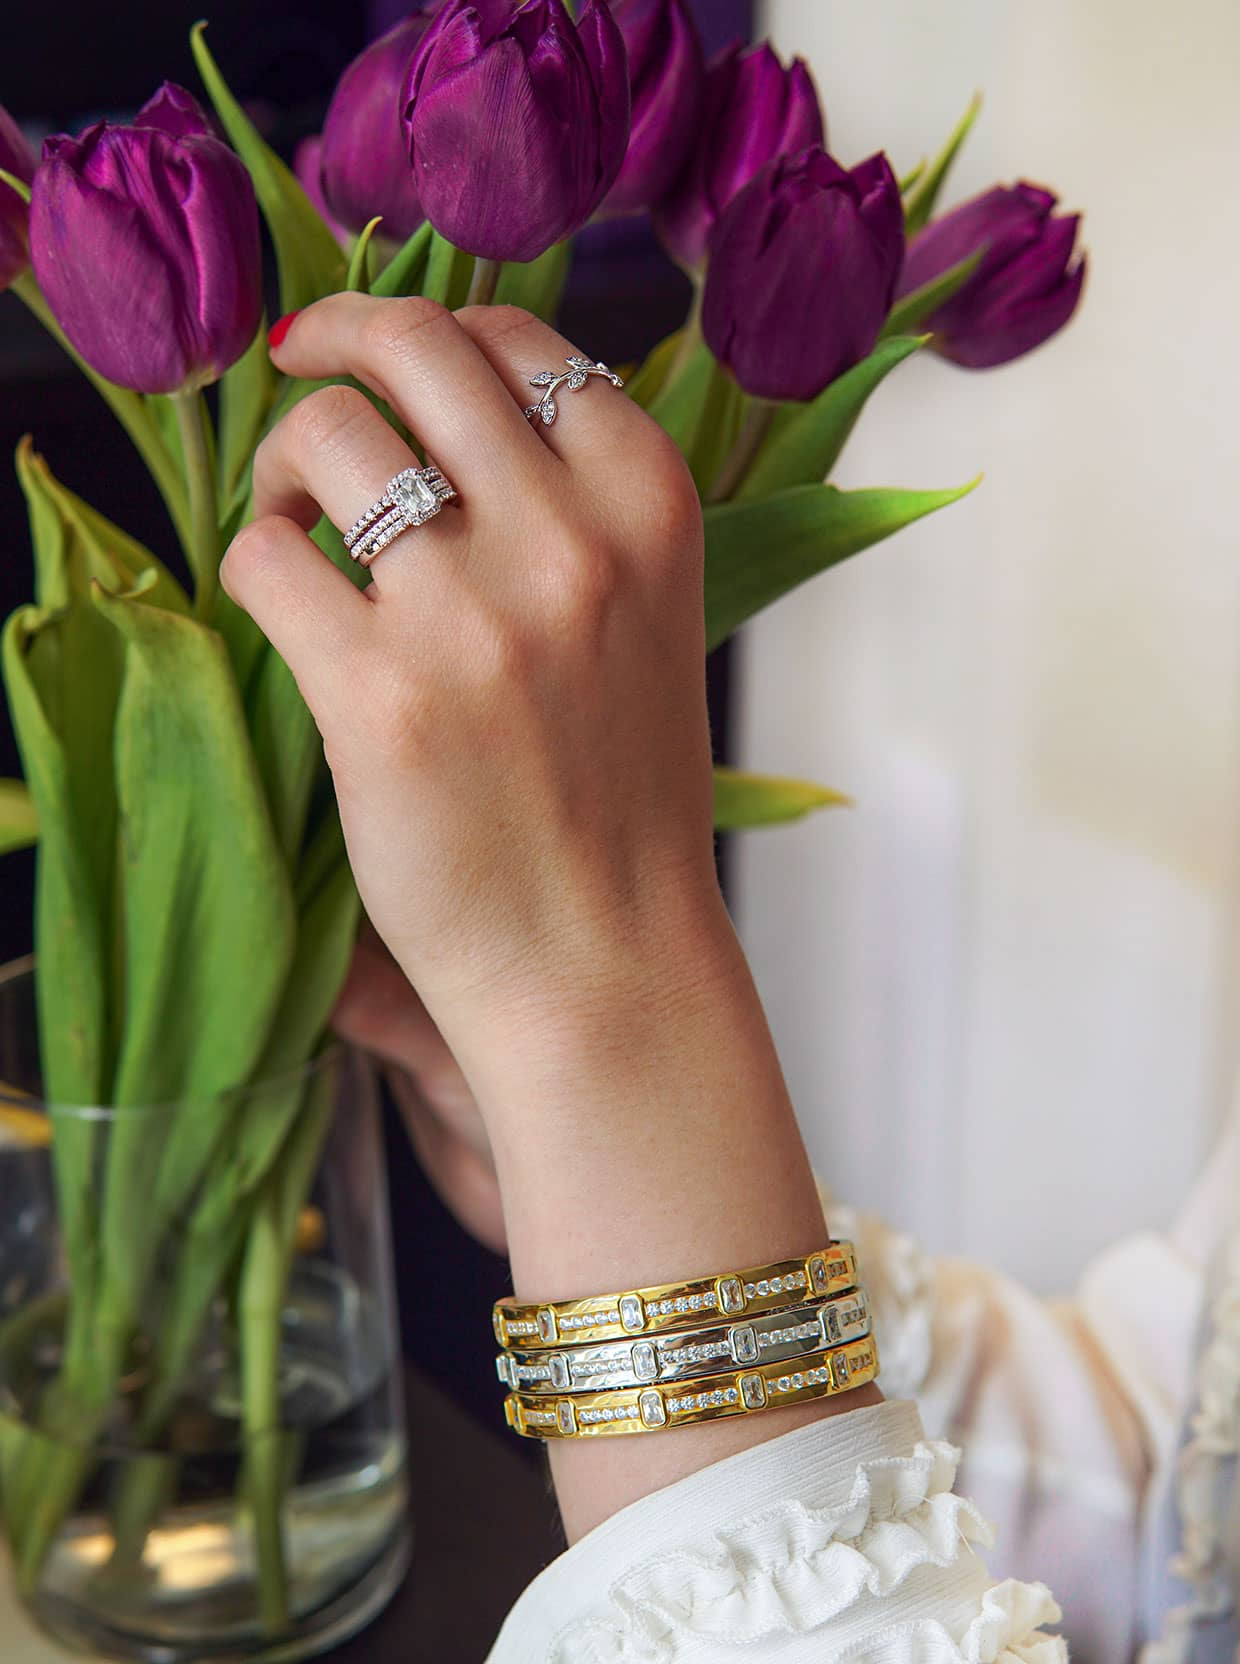 Julie Abelstedt hand with jewelry